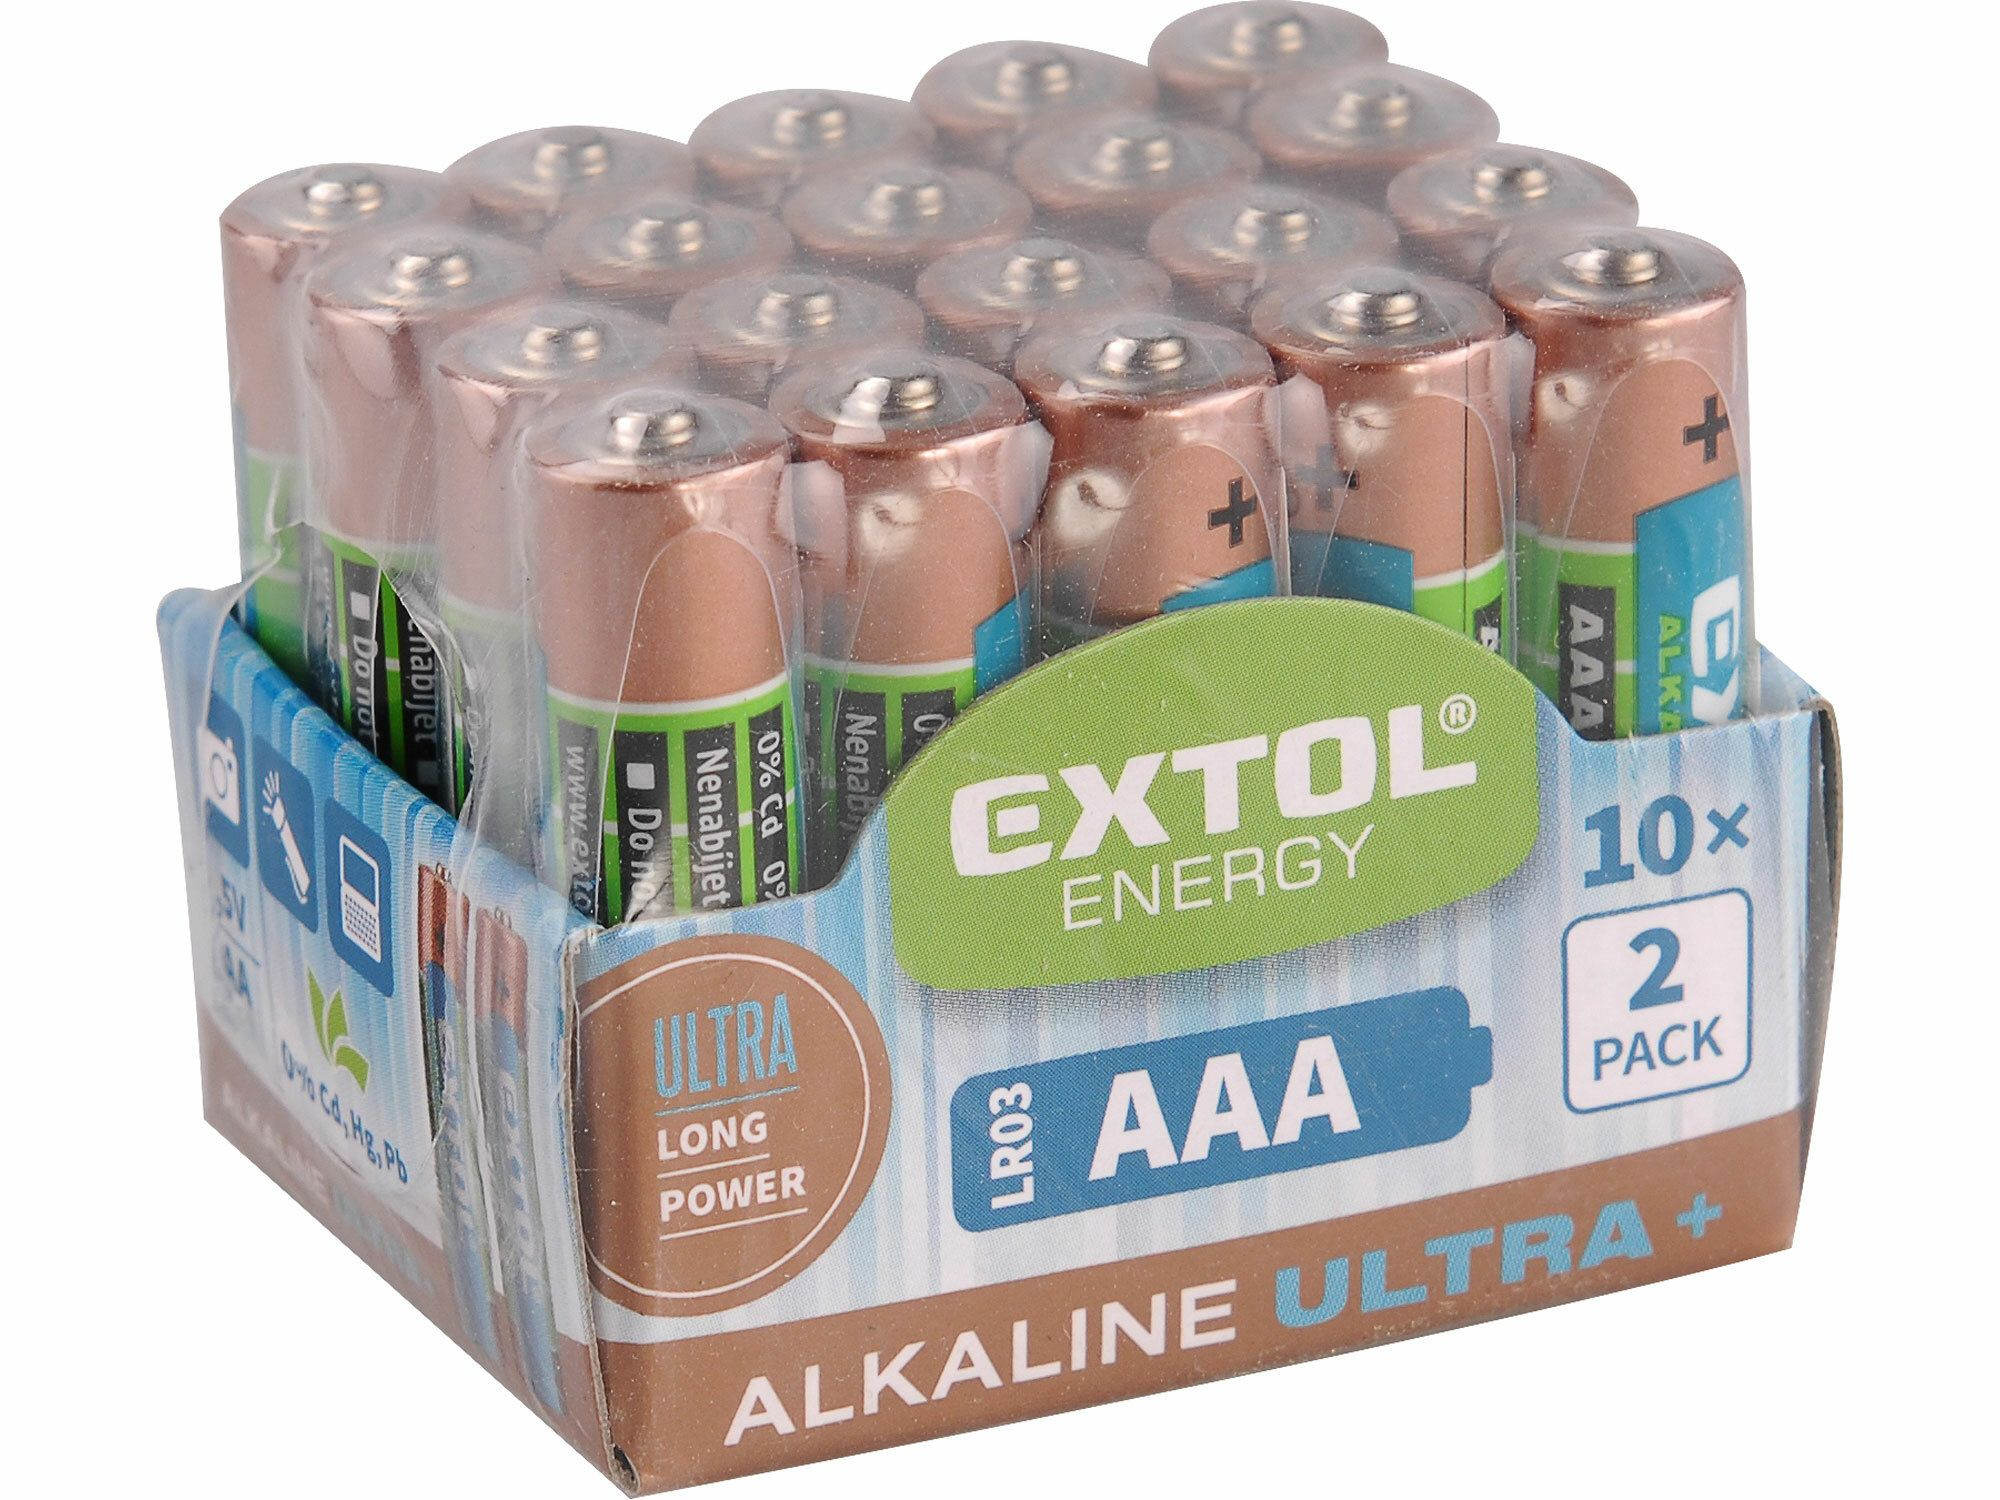 Baterie alkalické EXTOL ENERGY ULTRA , 20ks, 1,5V AA (LR6), EXTOL LIGHT